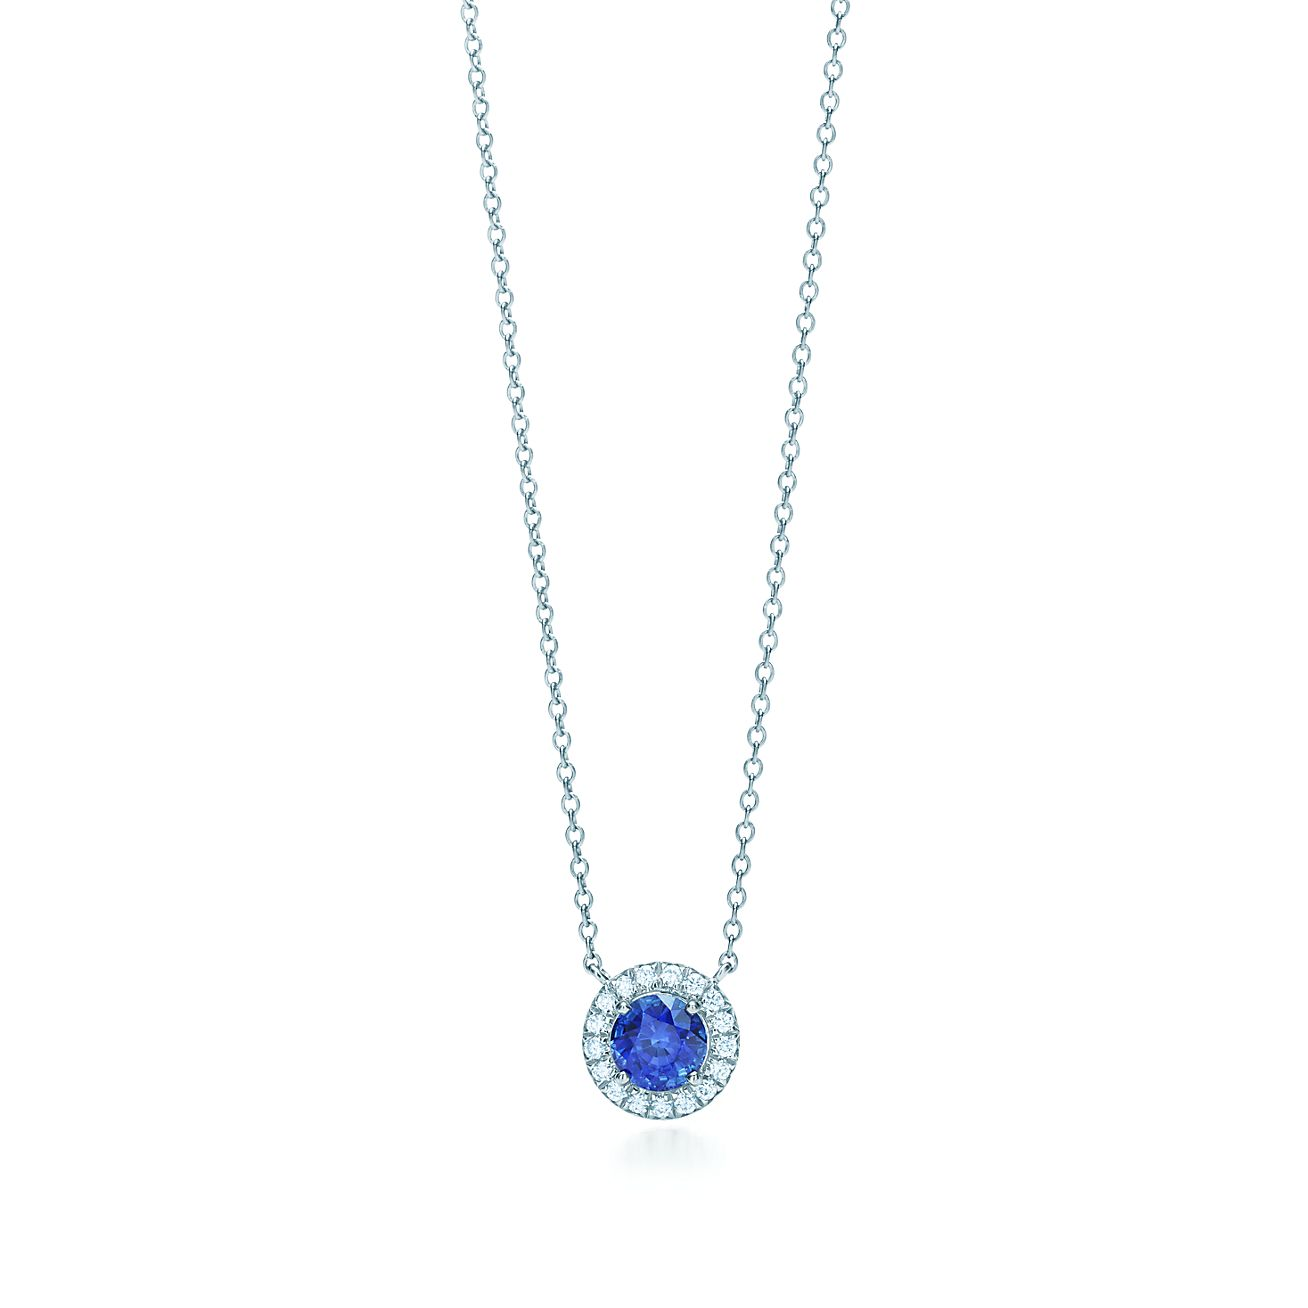 Tiffany soleste pendant in platinum with a sapphire and diamonds tiffany solestesapphire and diamond pendant aloadofball Image collections